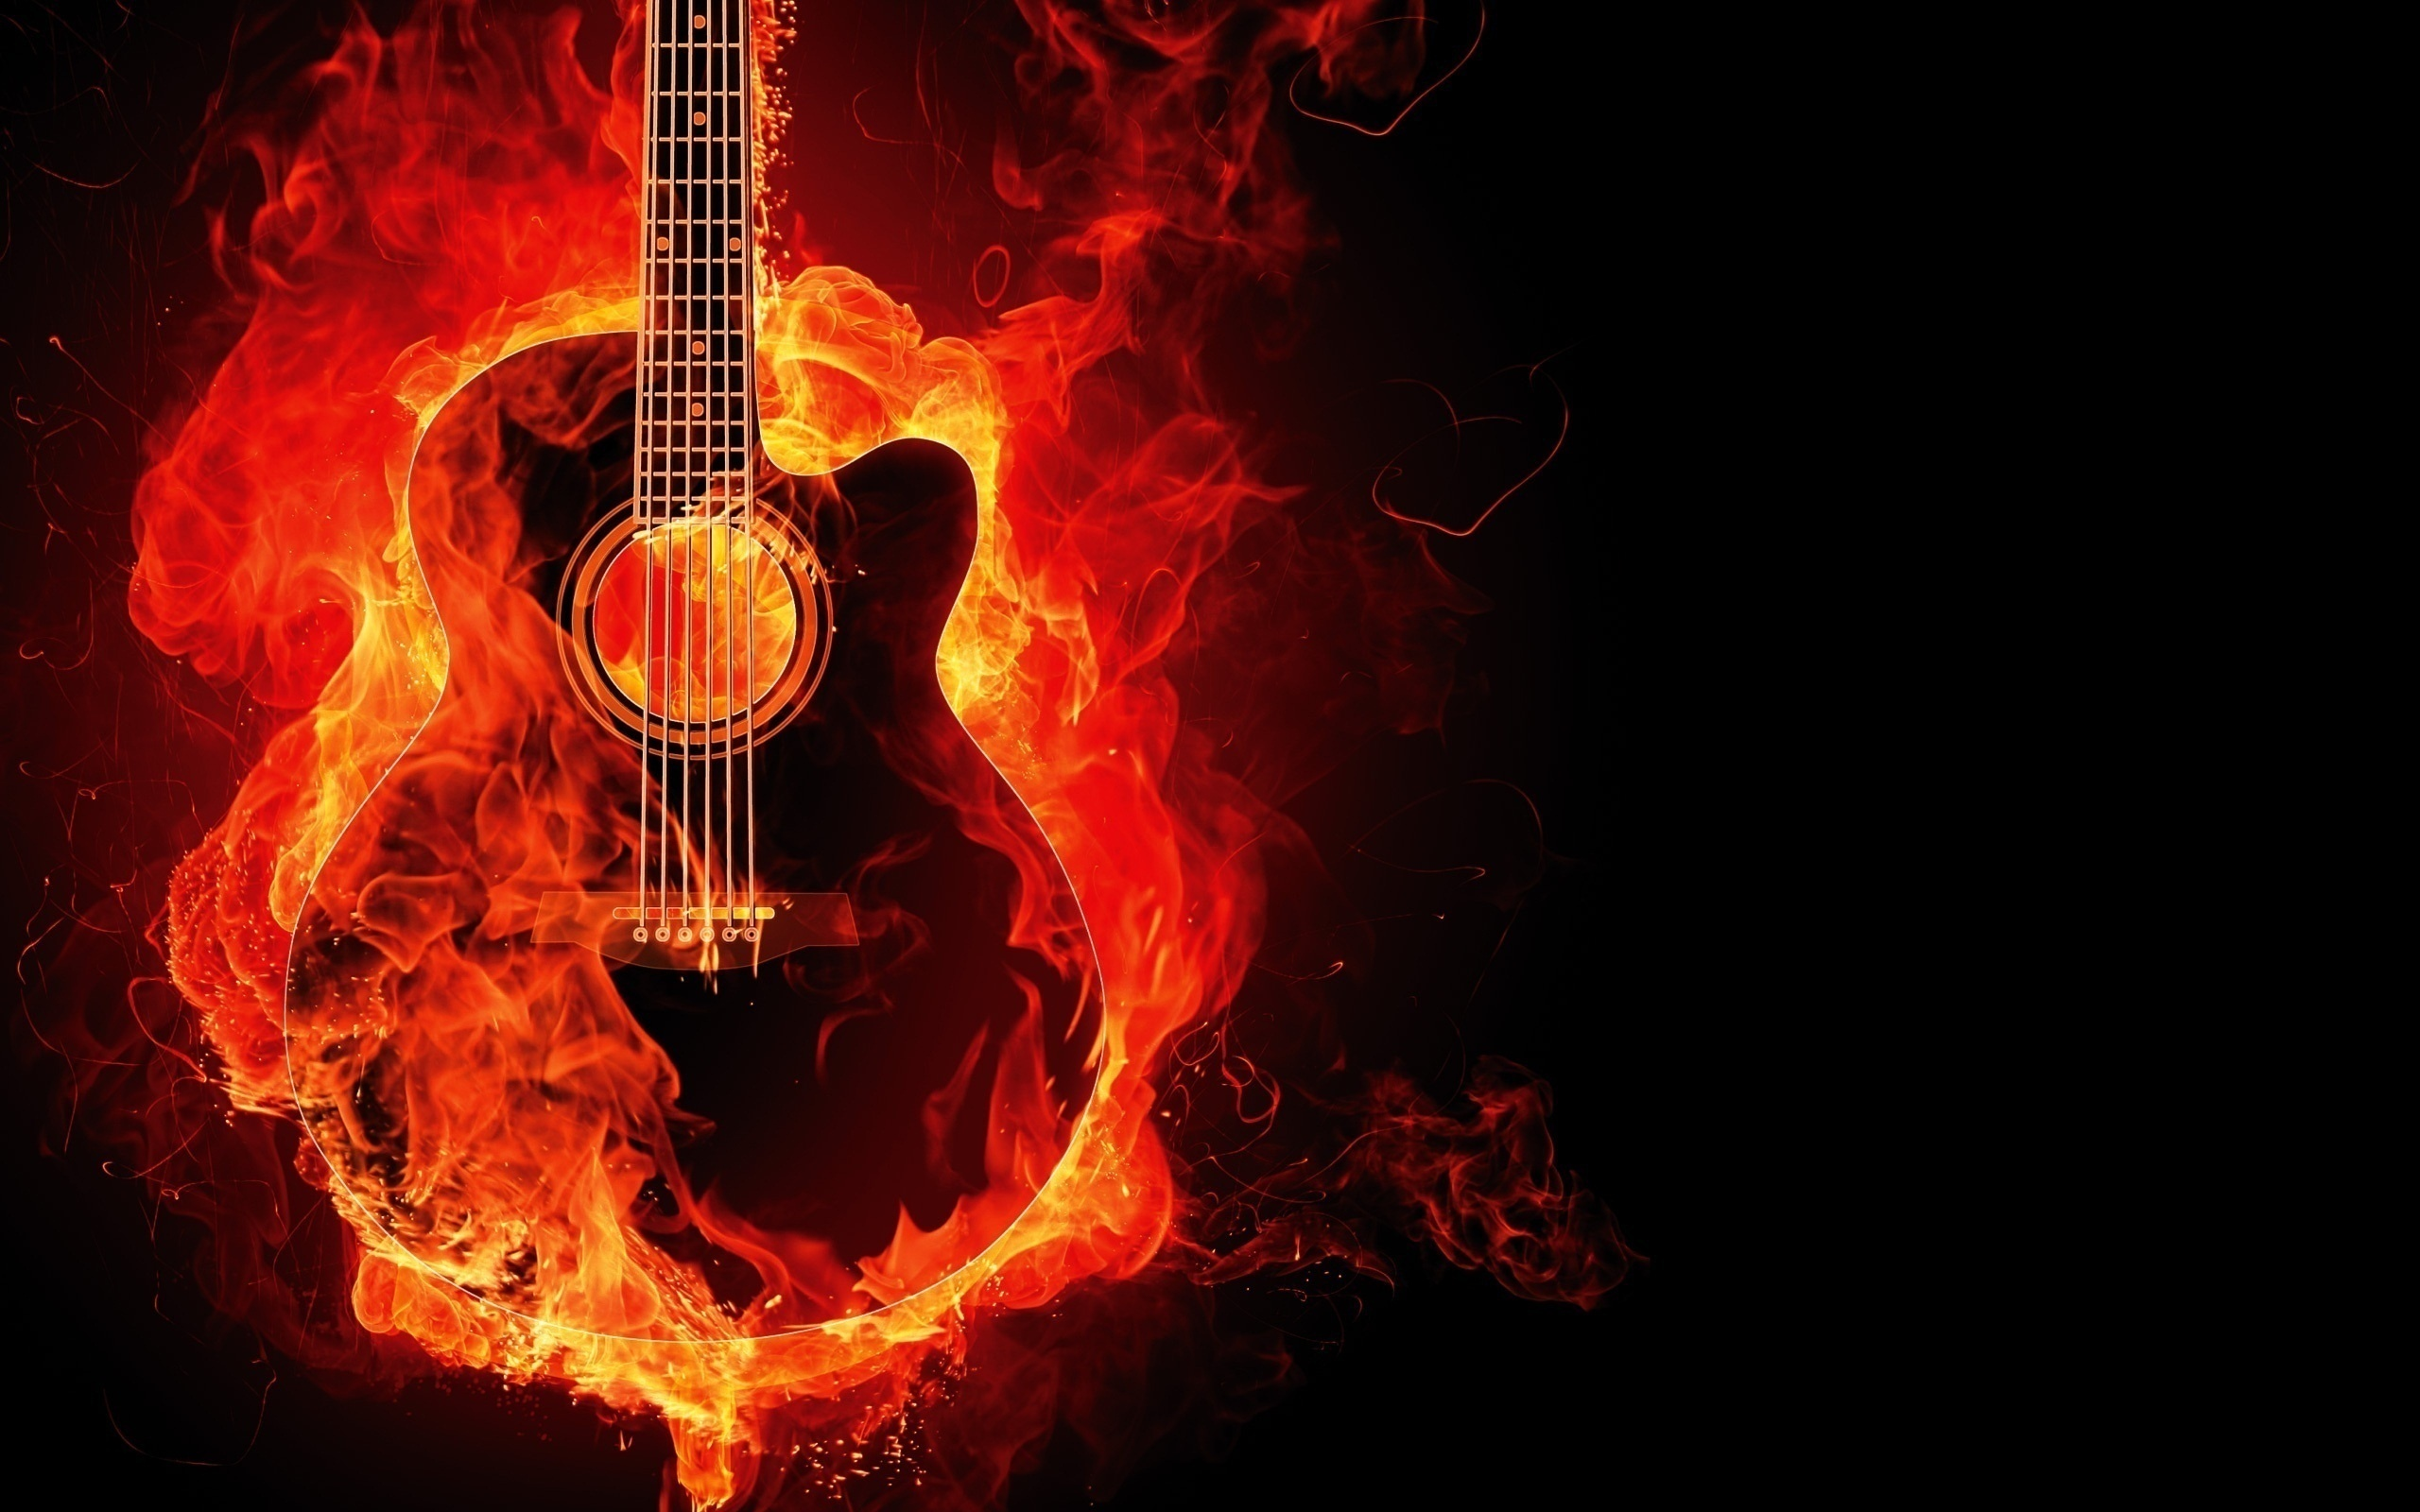 Playing Fire Wallpaper Free: Guitar Full HD Wallpaper And Background Image